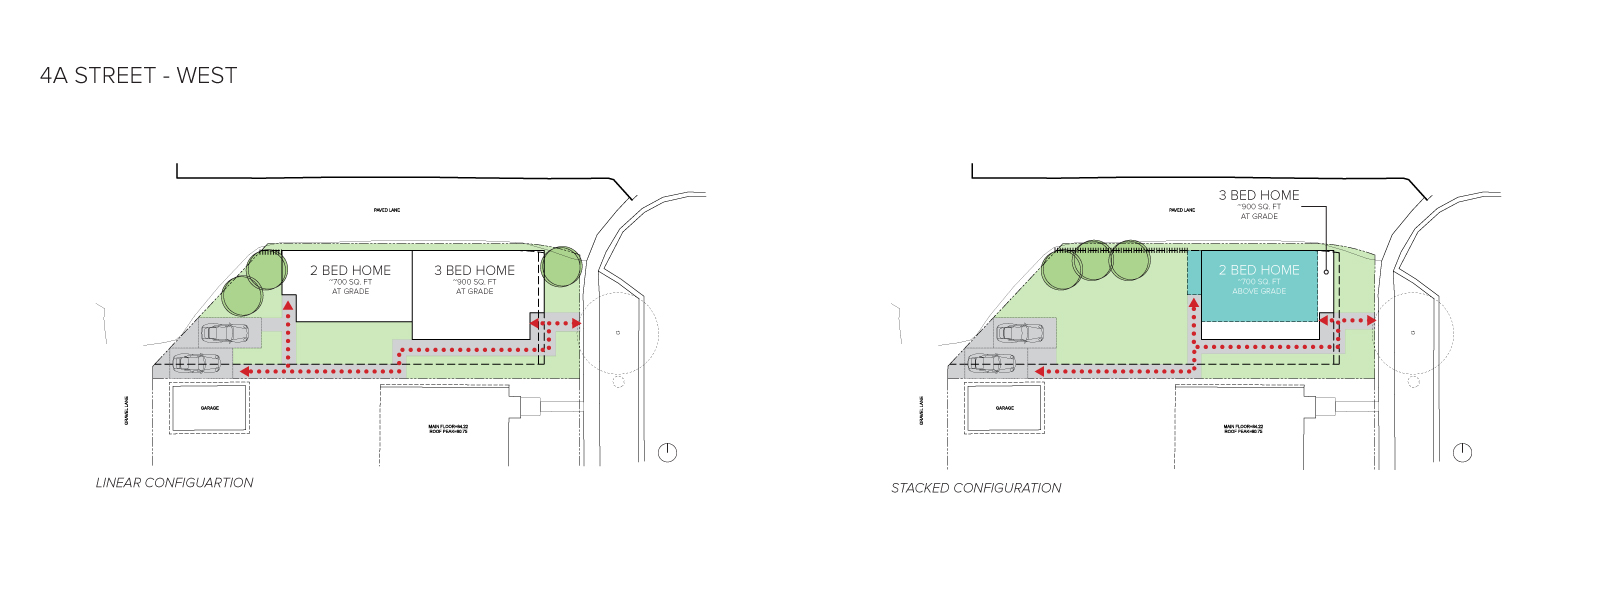 An image of the home configurations on the west side of 4A Street.